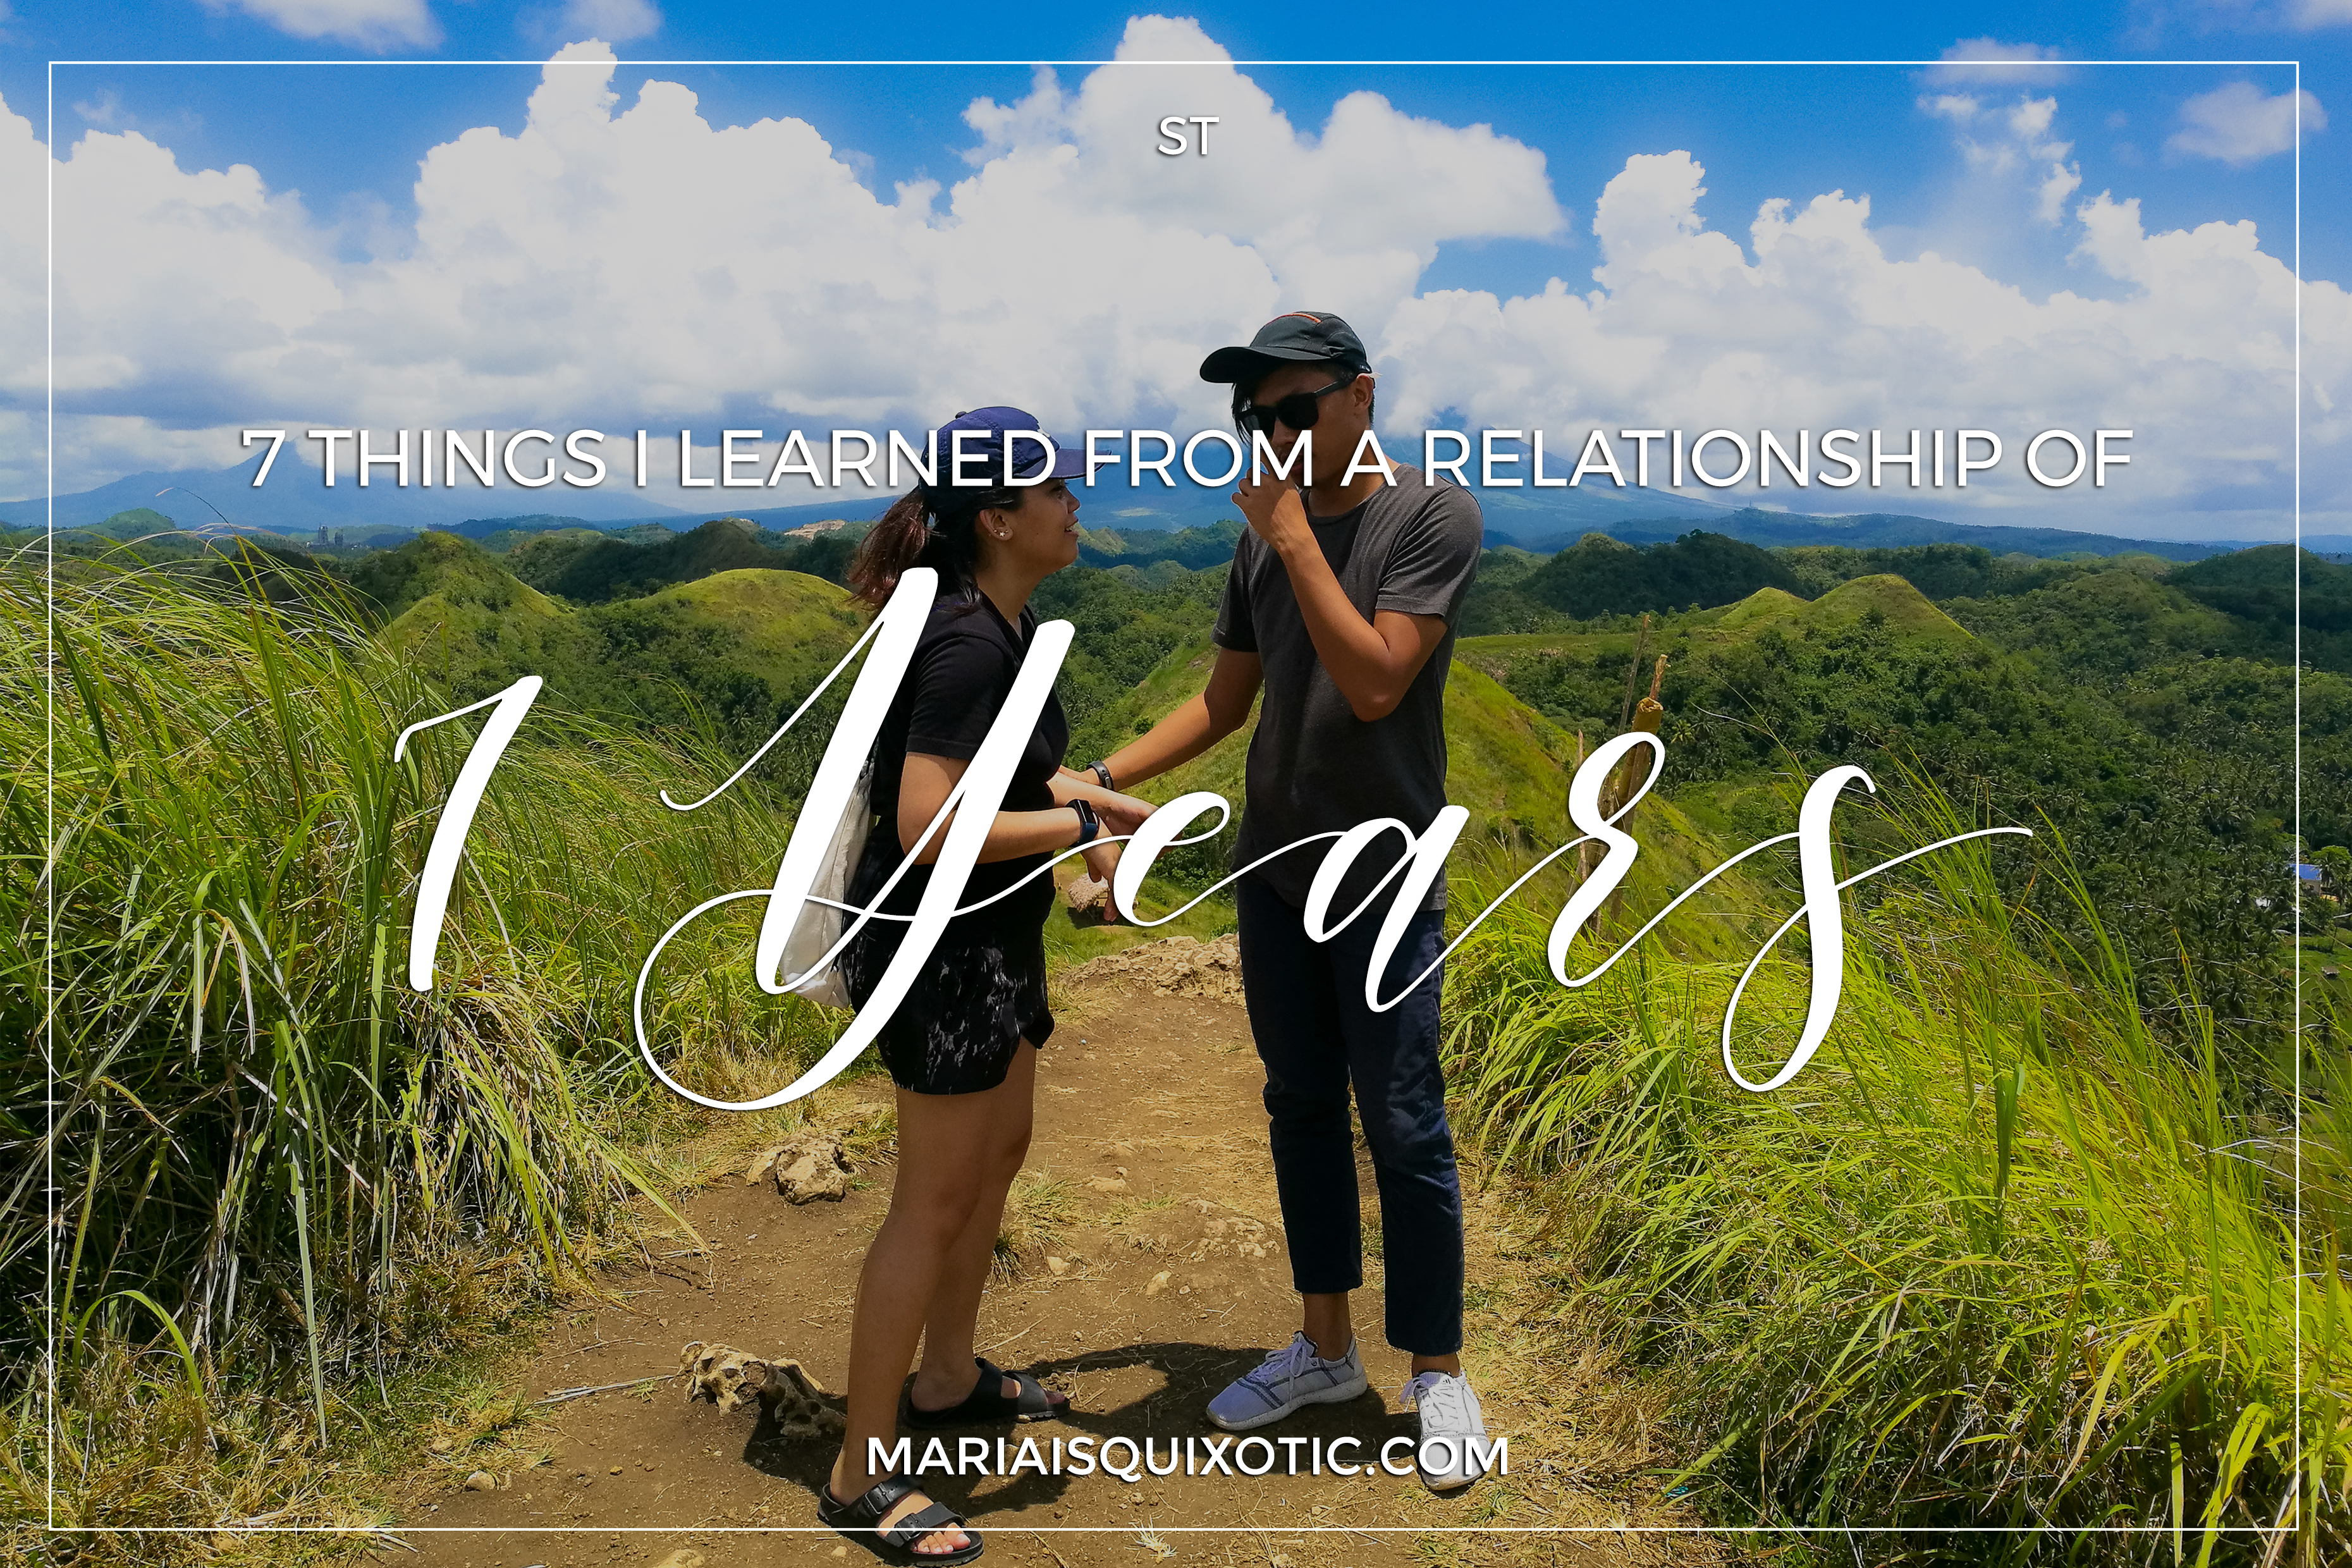 7 Things I Learned From A Relationship of 7 Years